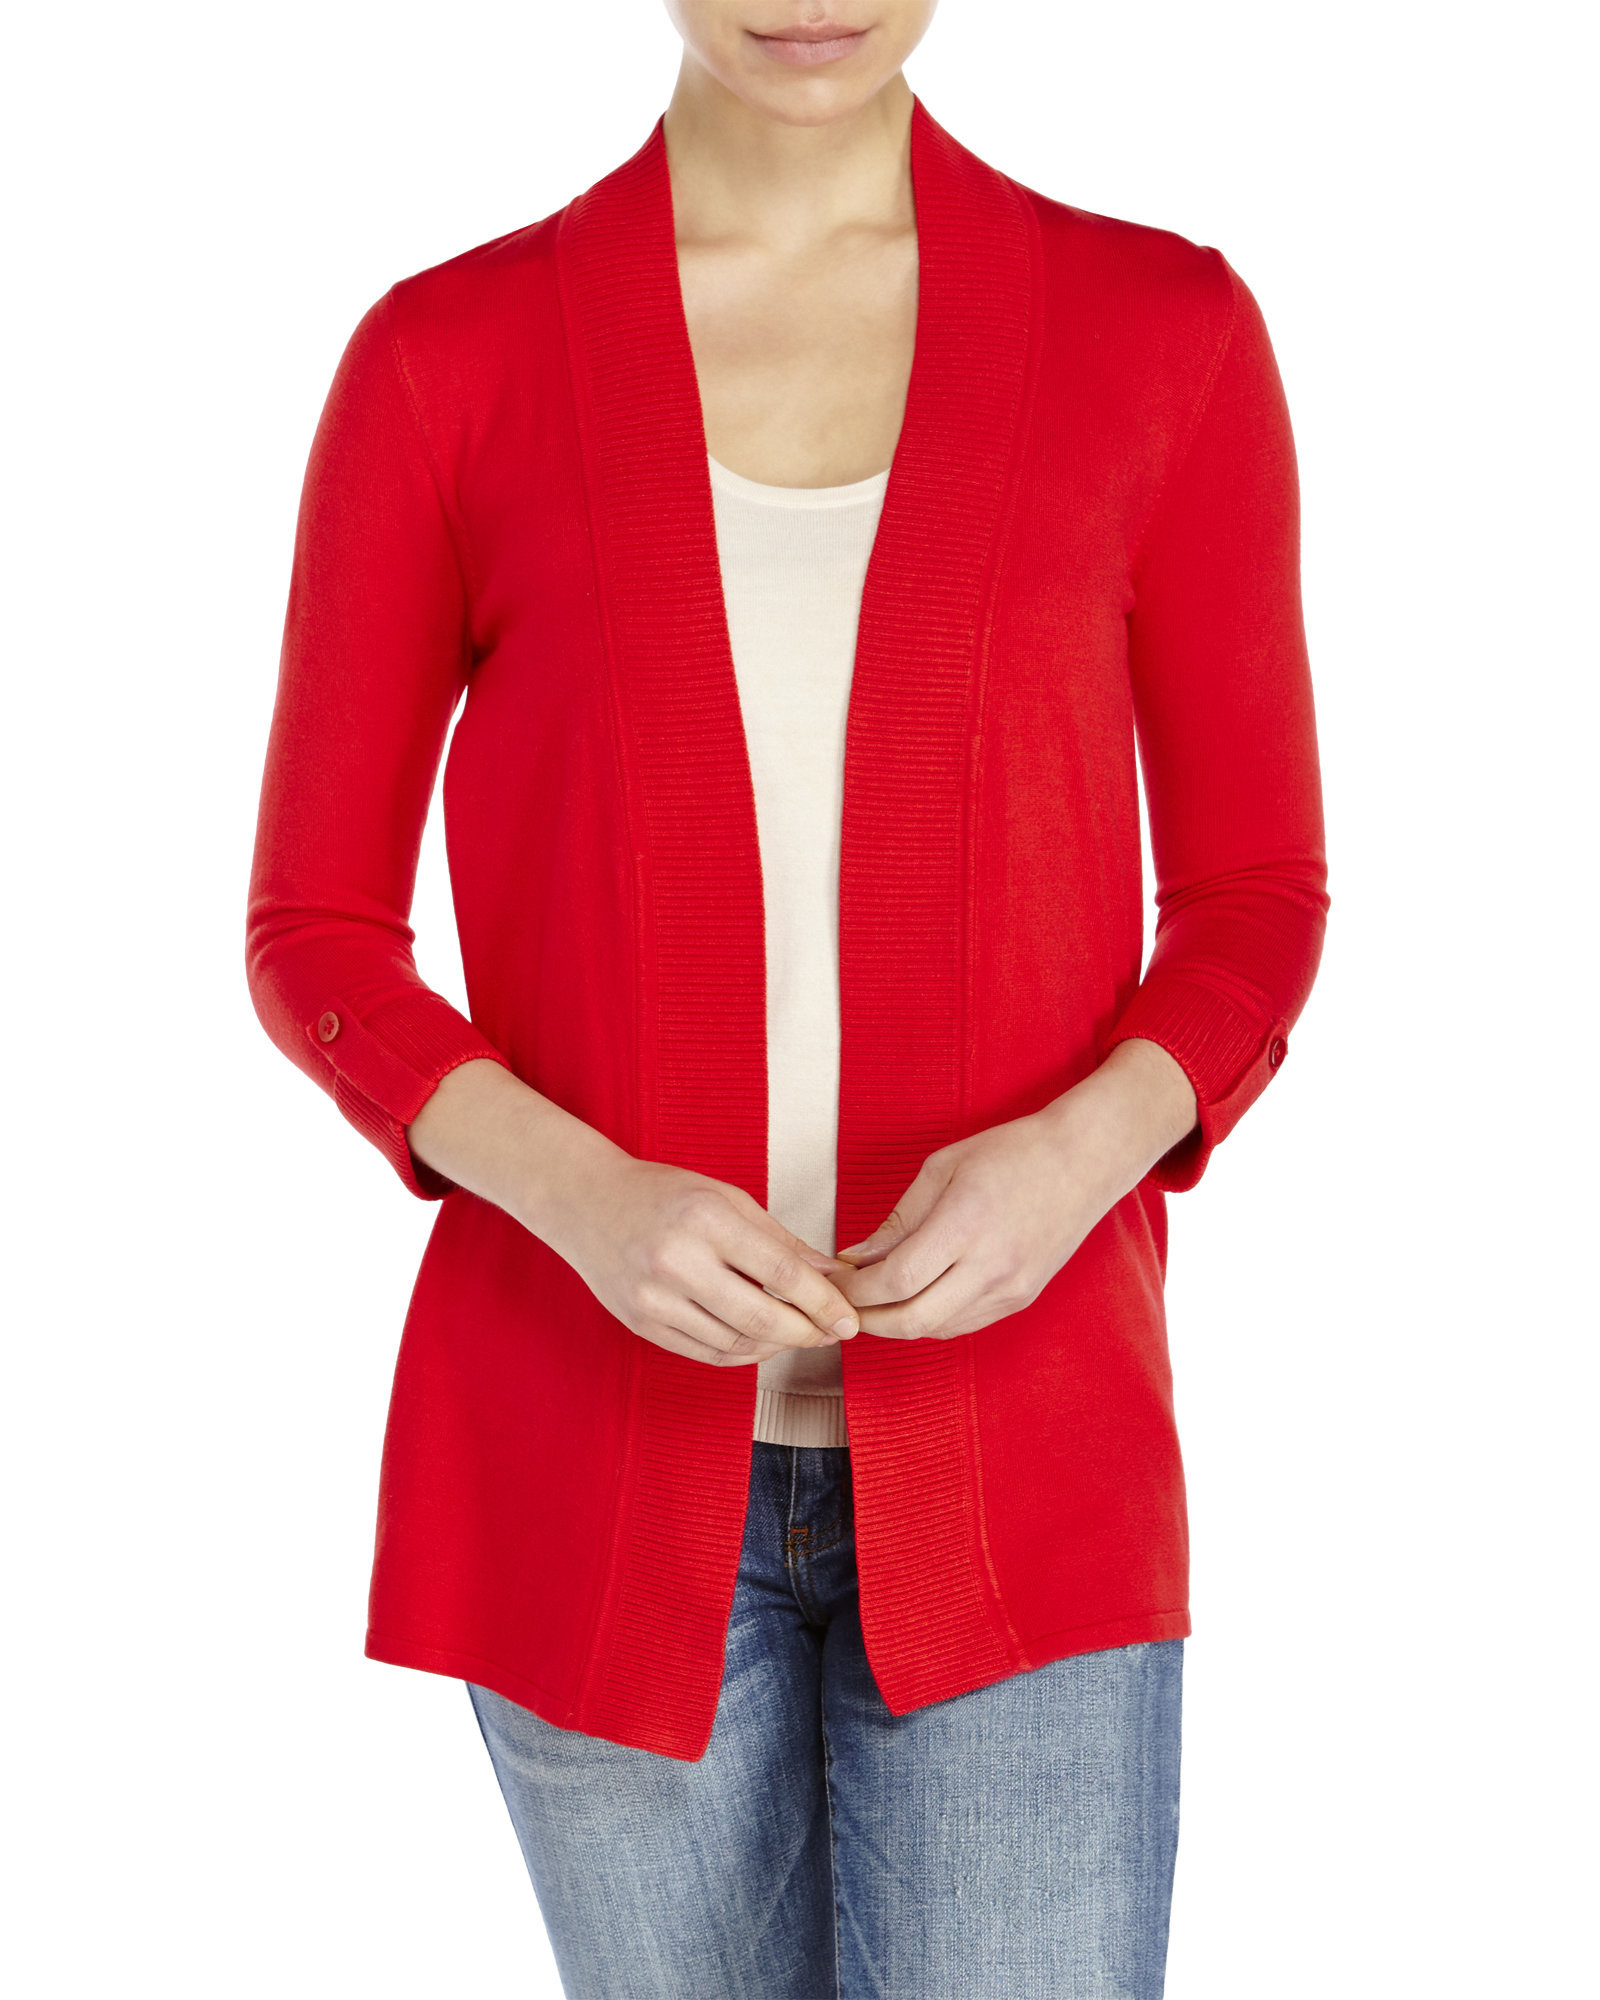 Premise studio Tab-Sleeve Open Cardigan in Red | Lyst